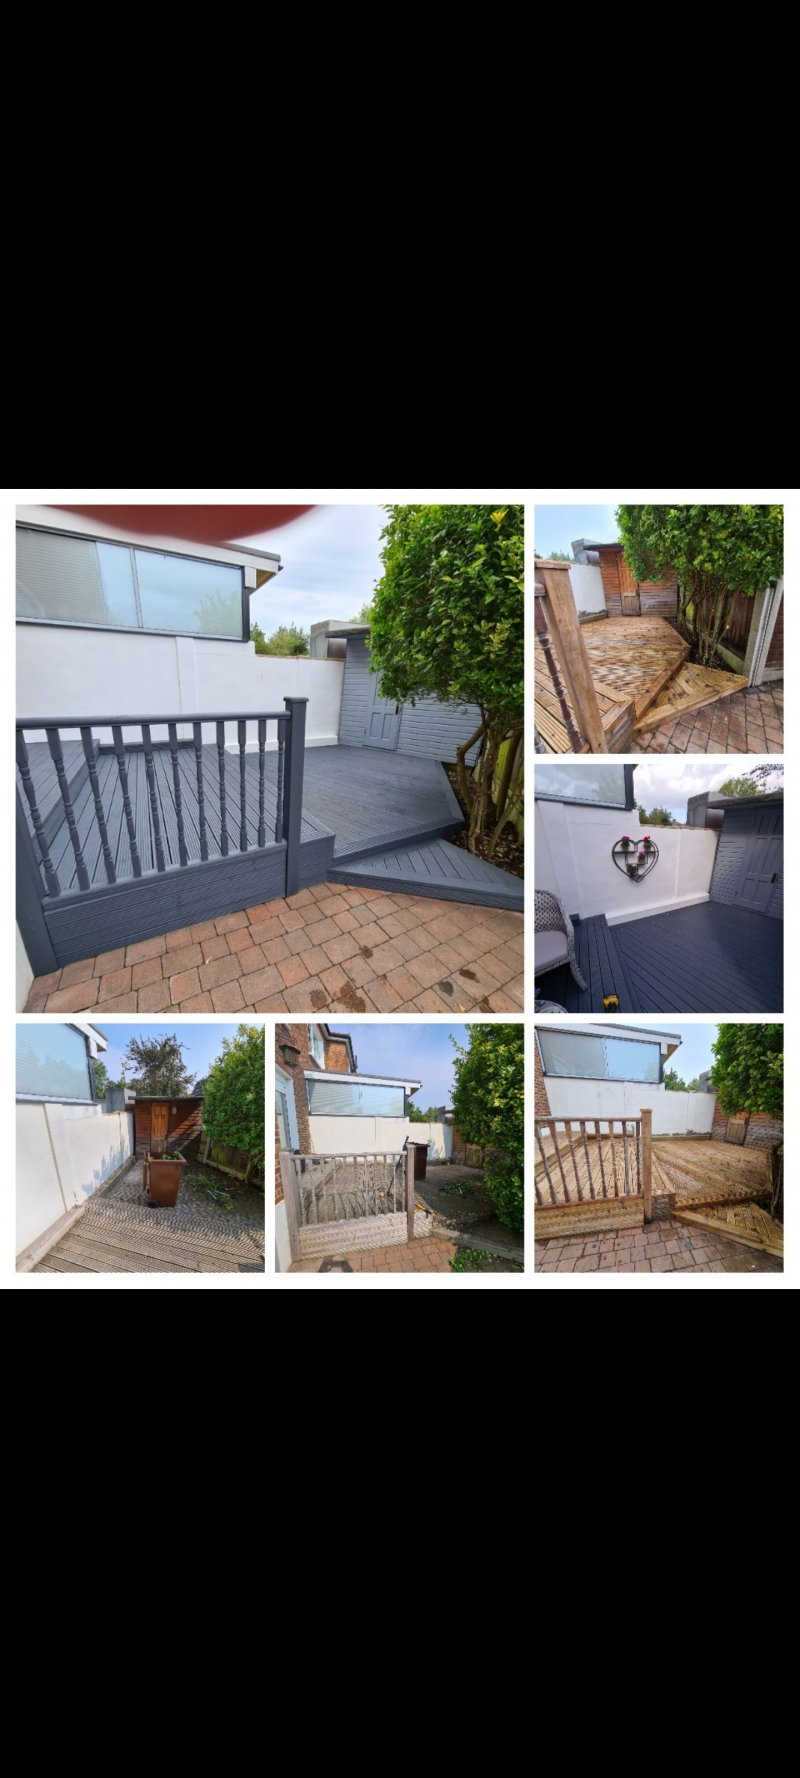 Prune tree, clean and paint decking, shed and wall